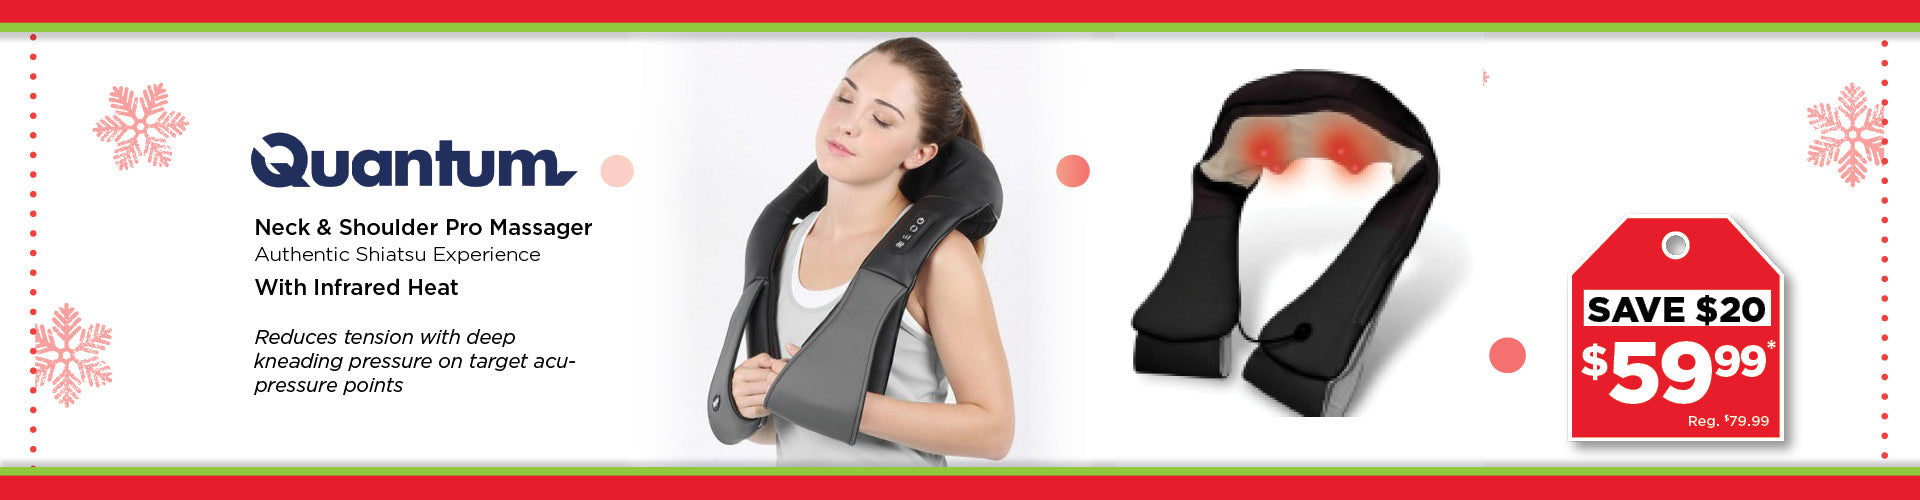 Neck & Shoulder Massager